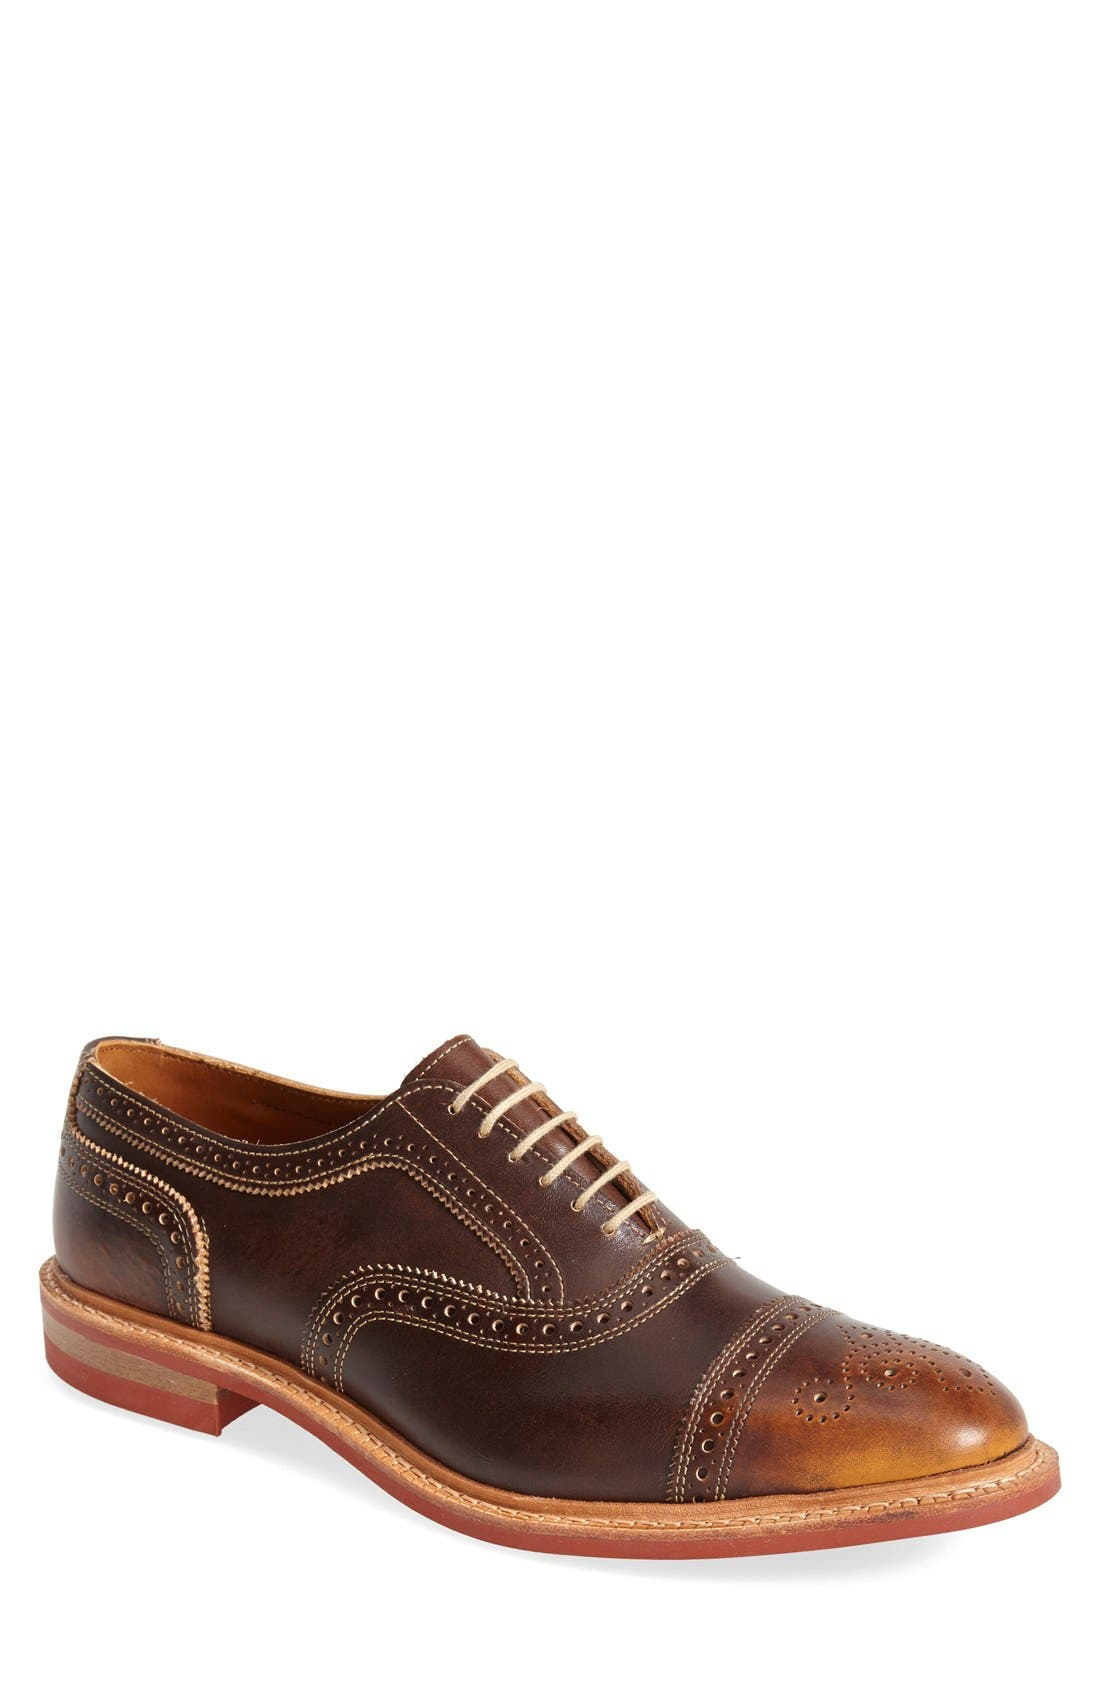 'Strandmok' Cap Toe Oxford,                         Main,                         color, BROWN LEATHER